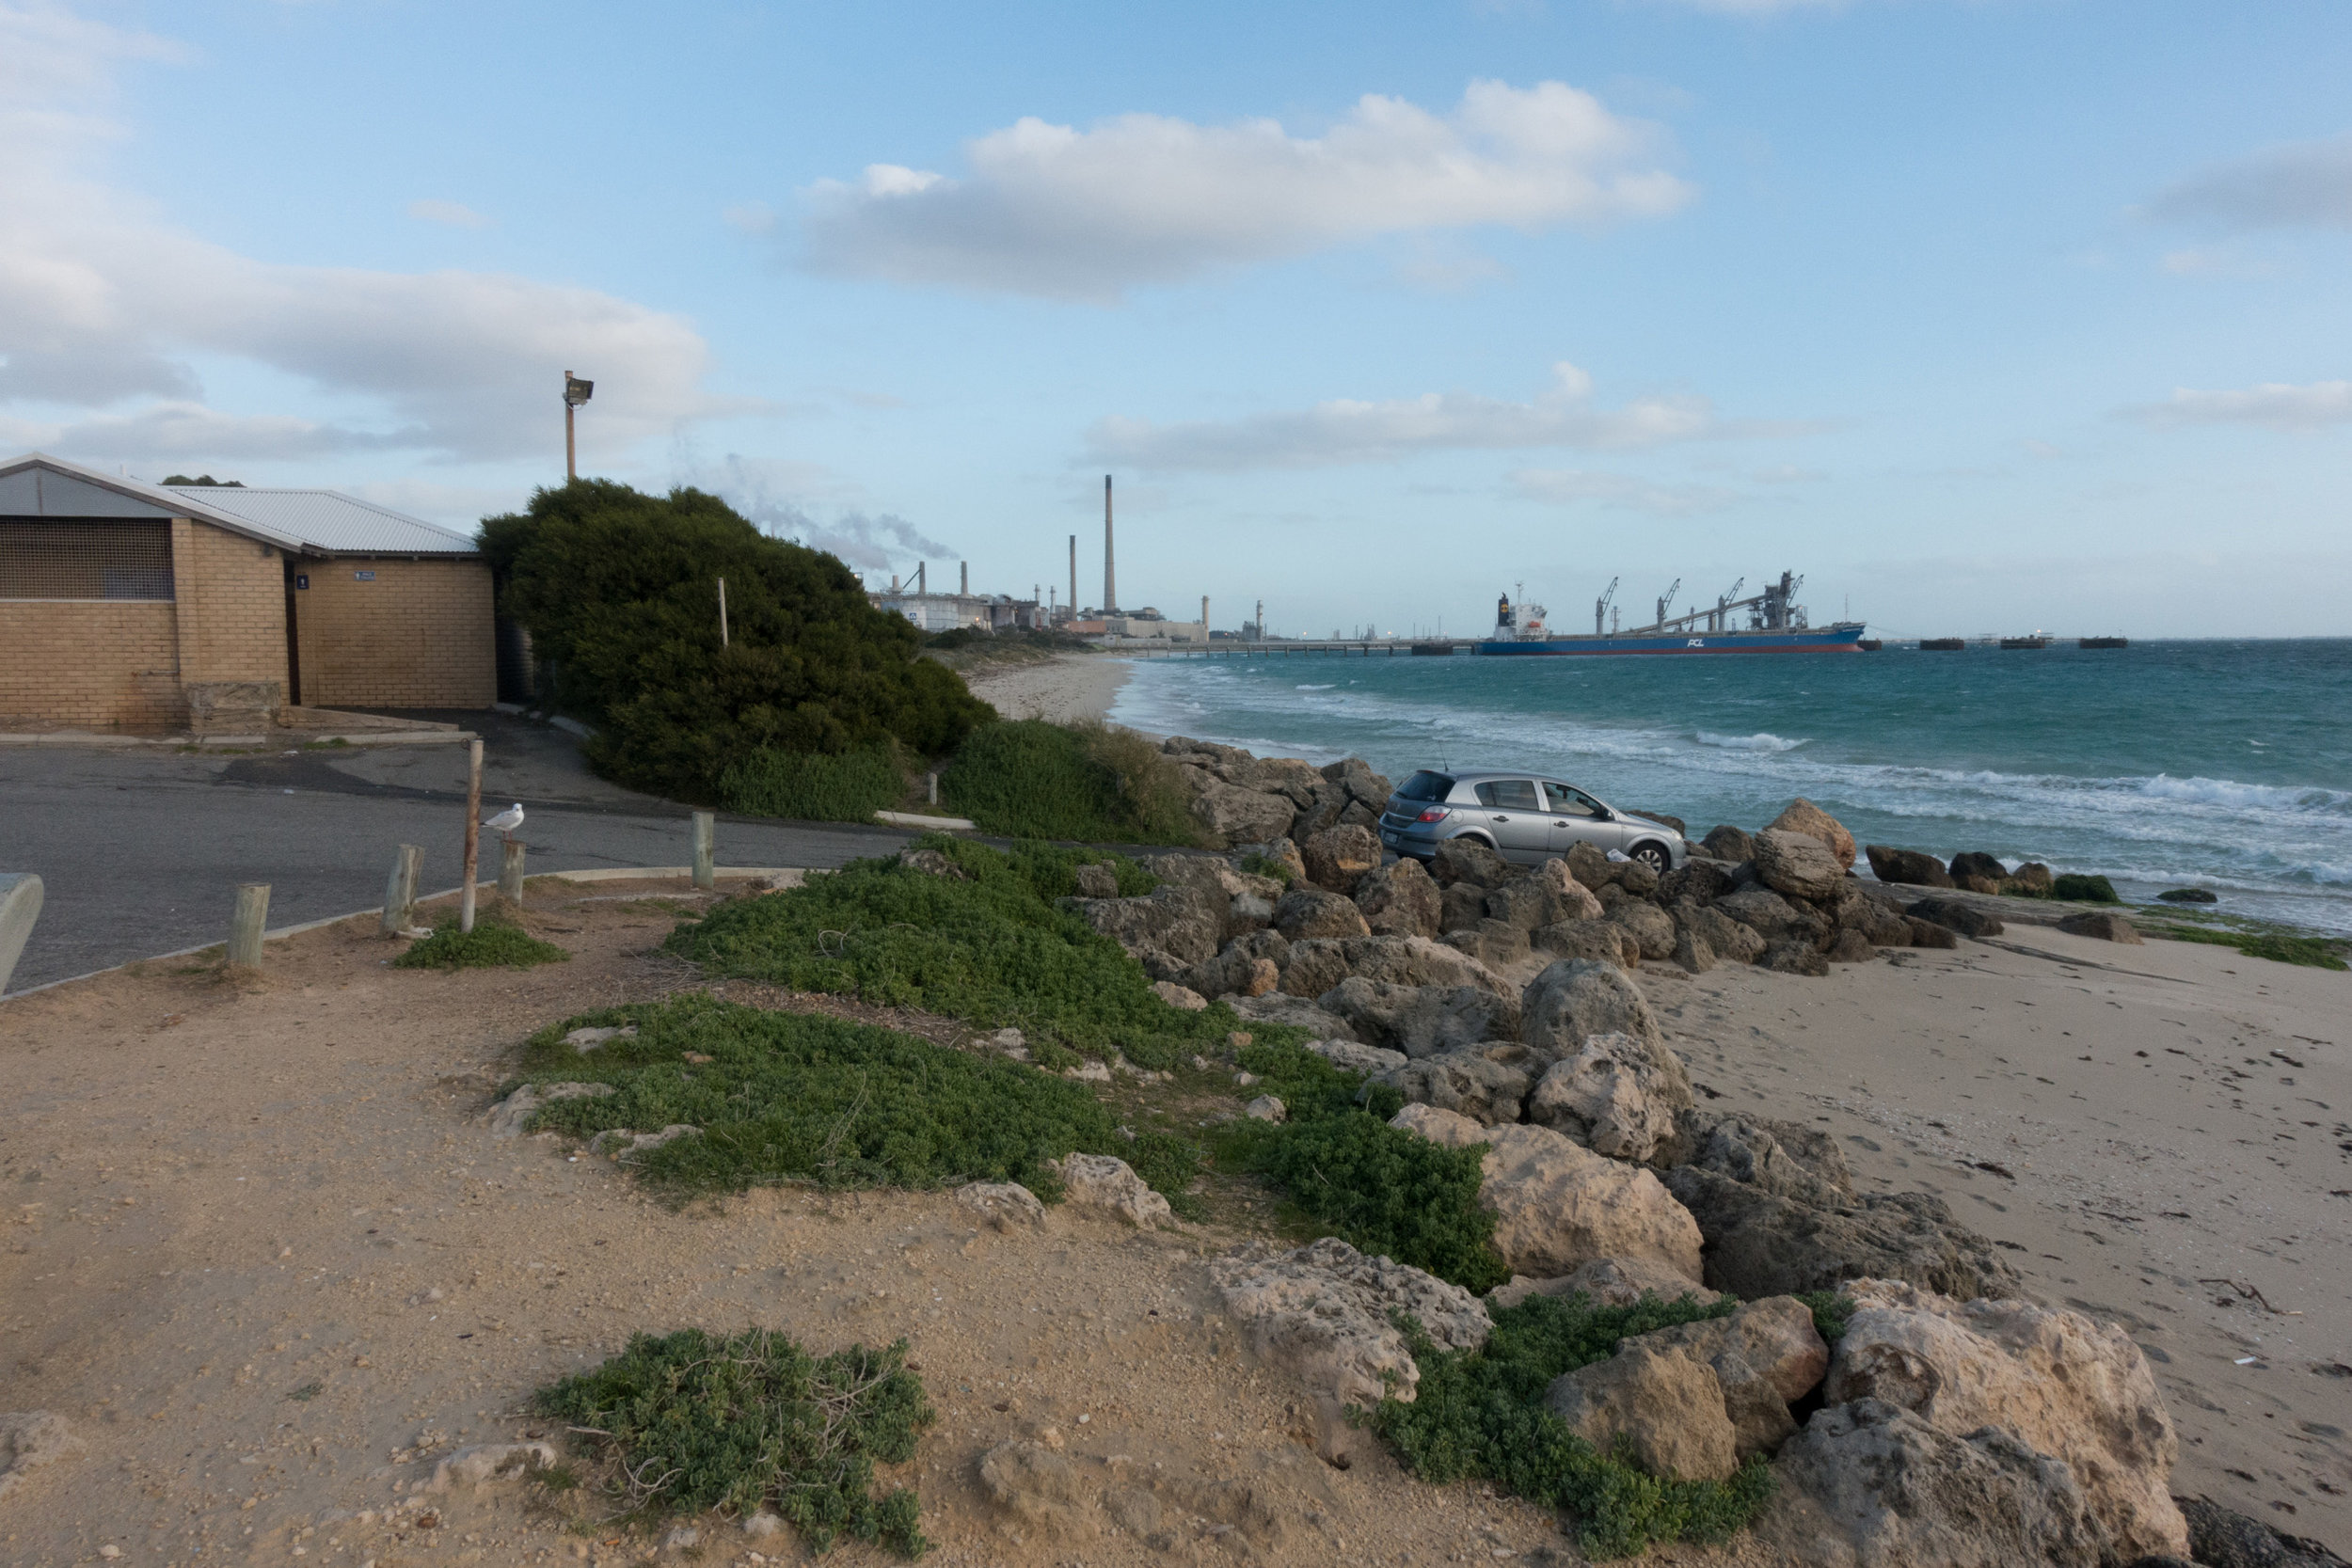 Plate 2: The beach south of Naval Base shacks and the small boat launching ramp